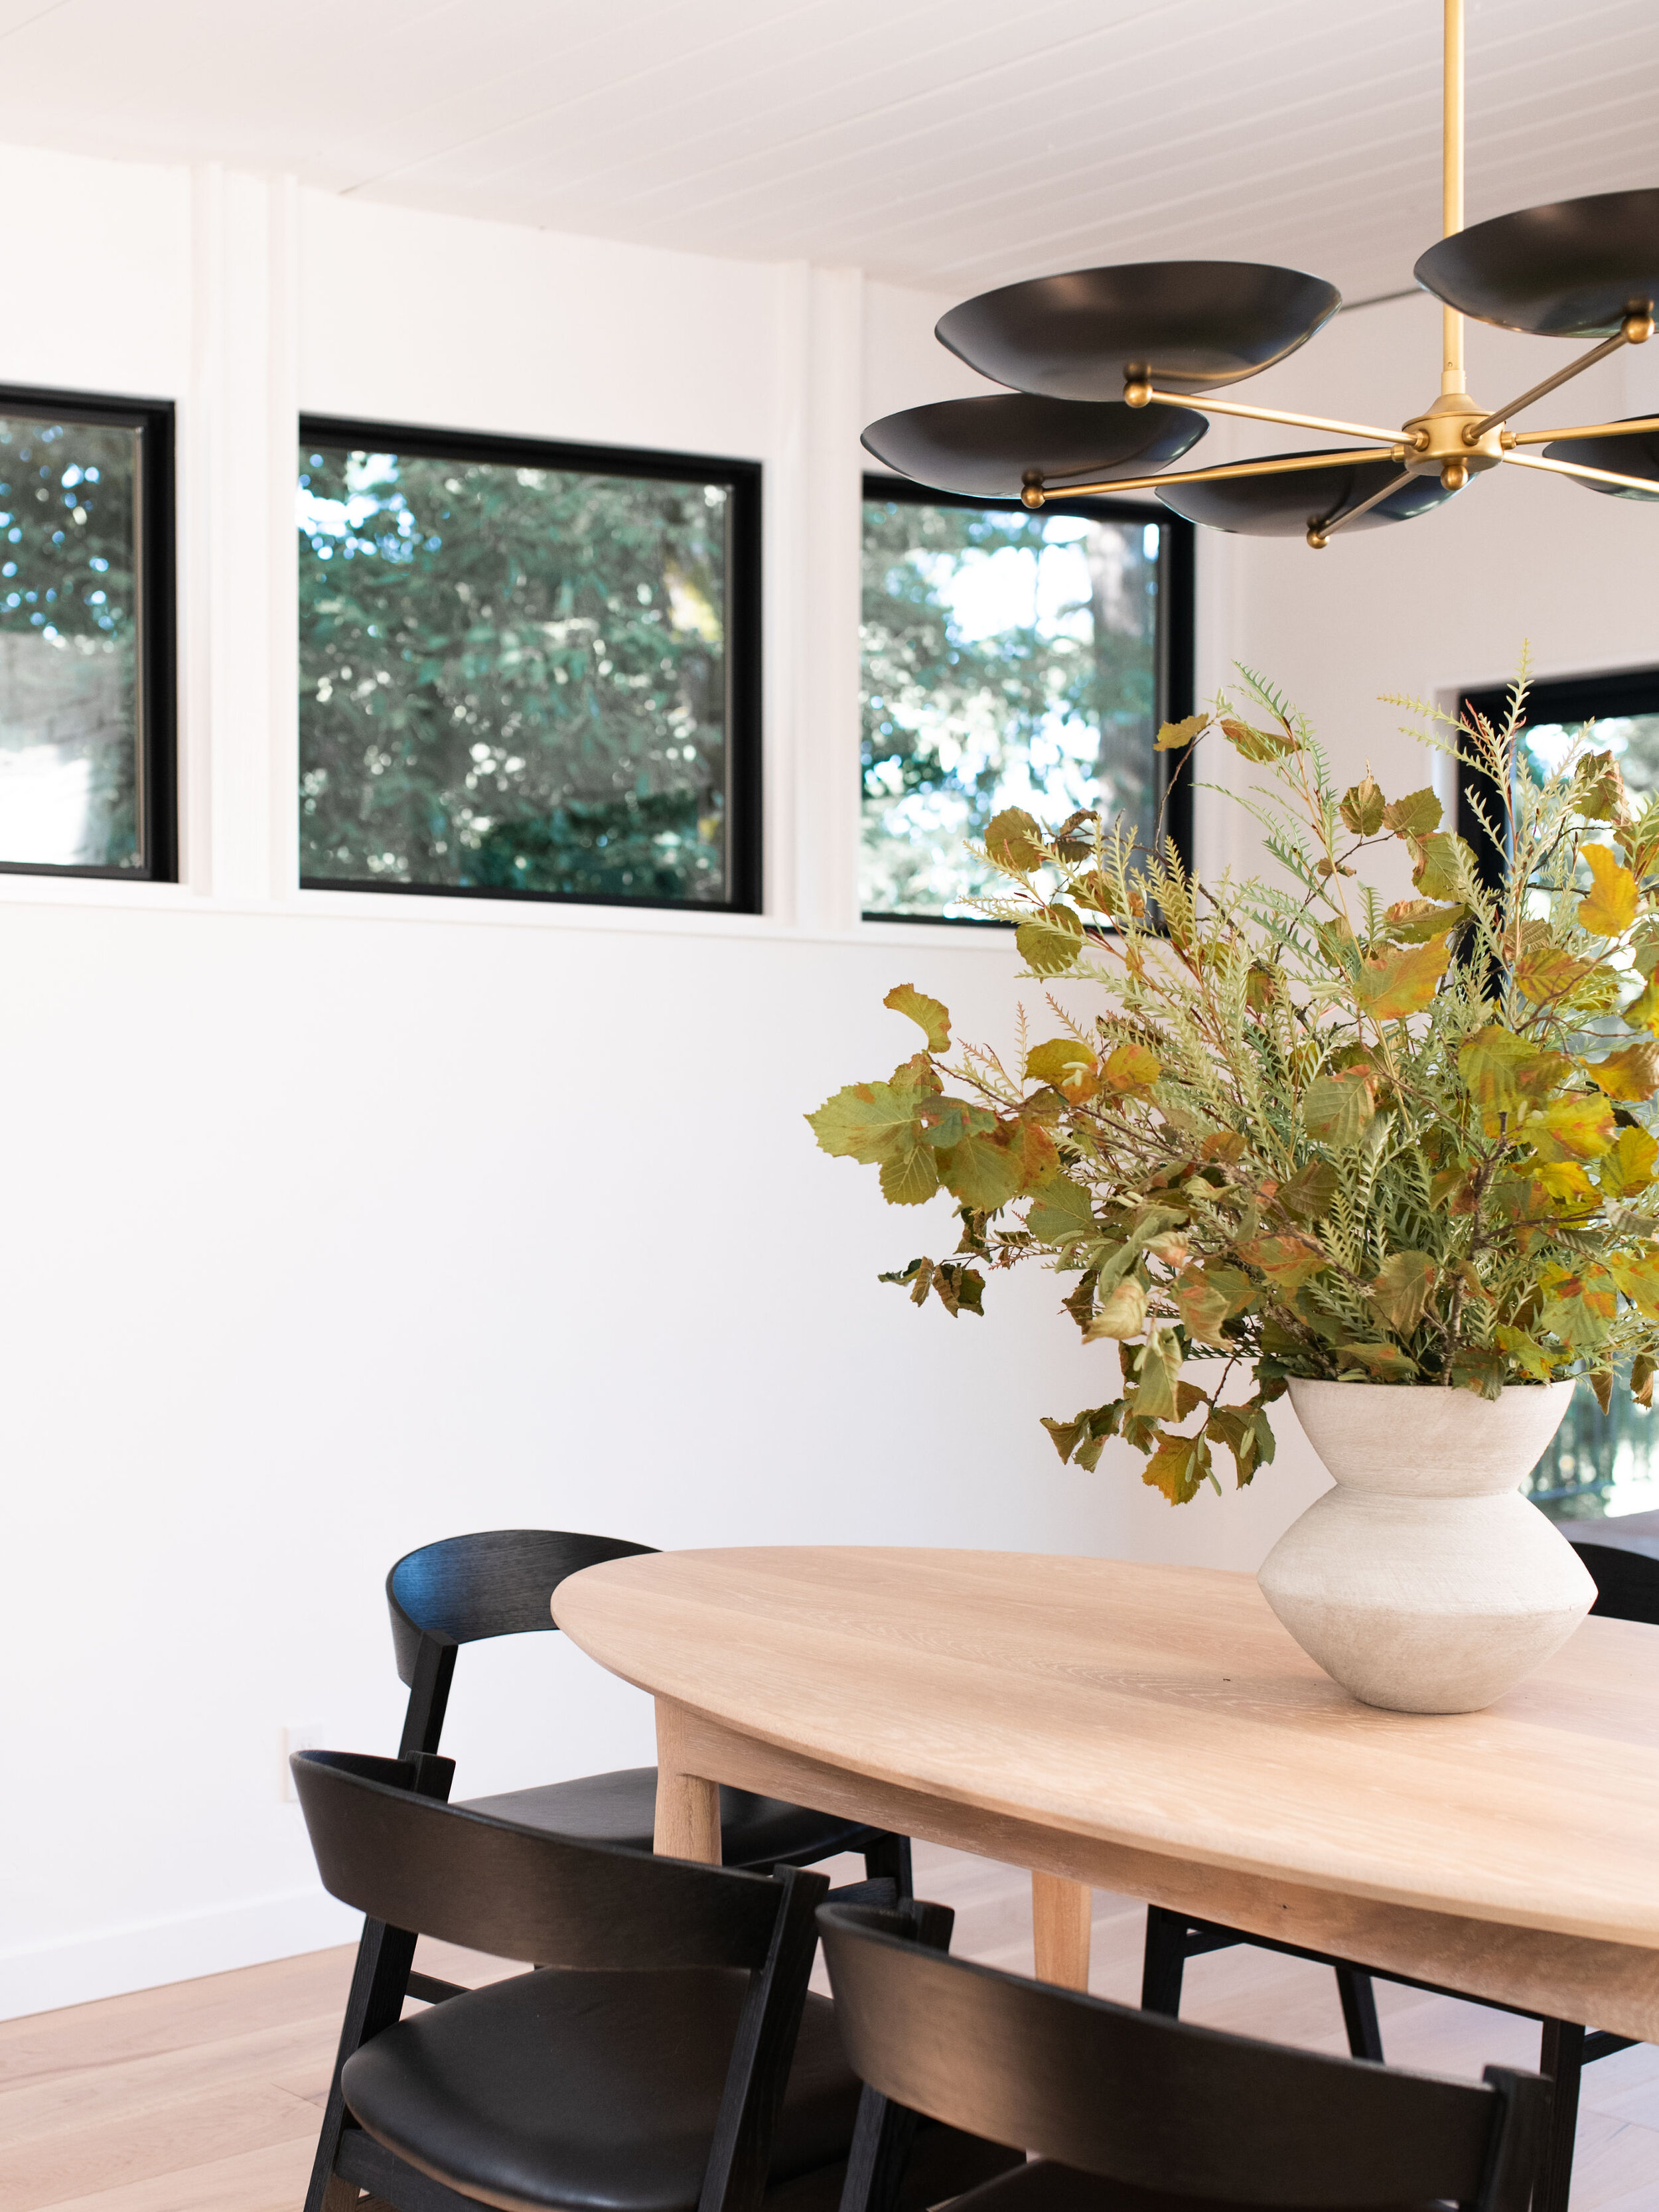 Adding some greenery is a great way to enhance a table and include some more earthy tones into any space.